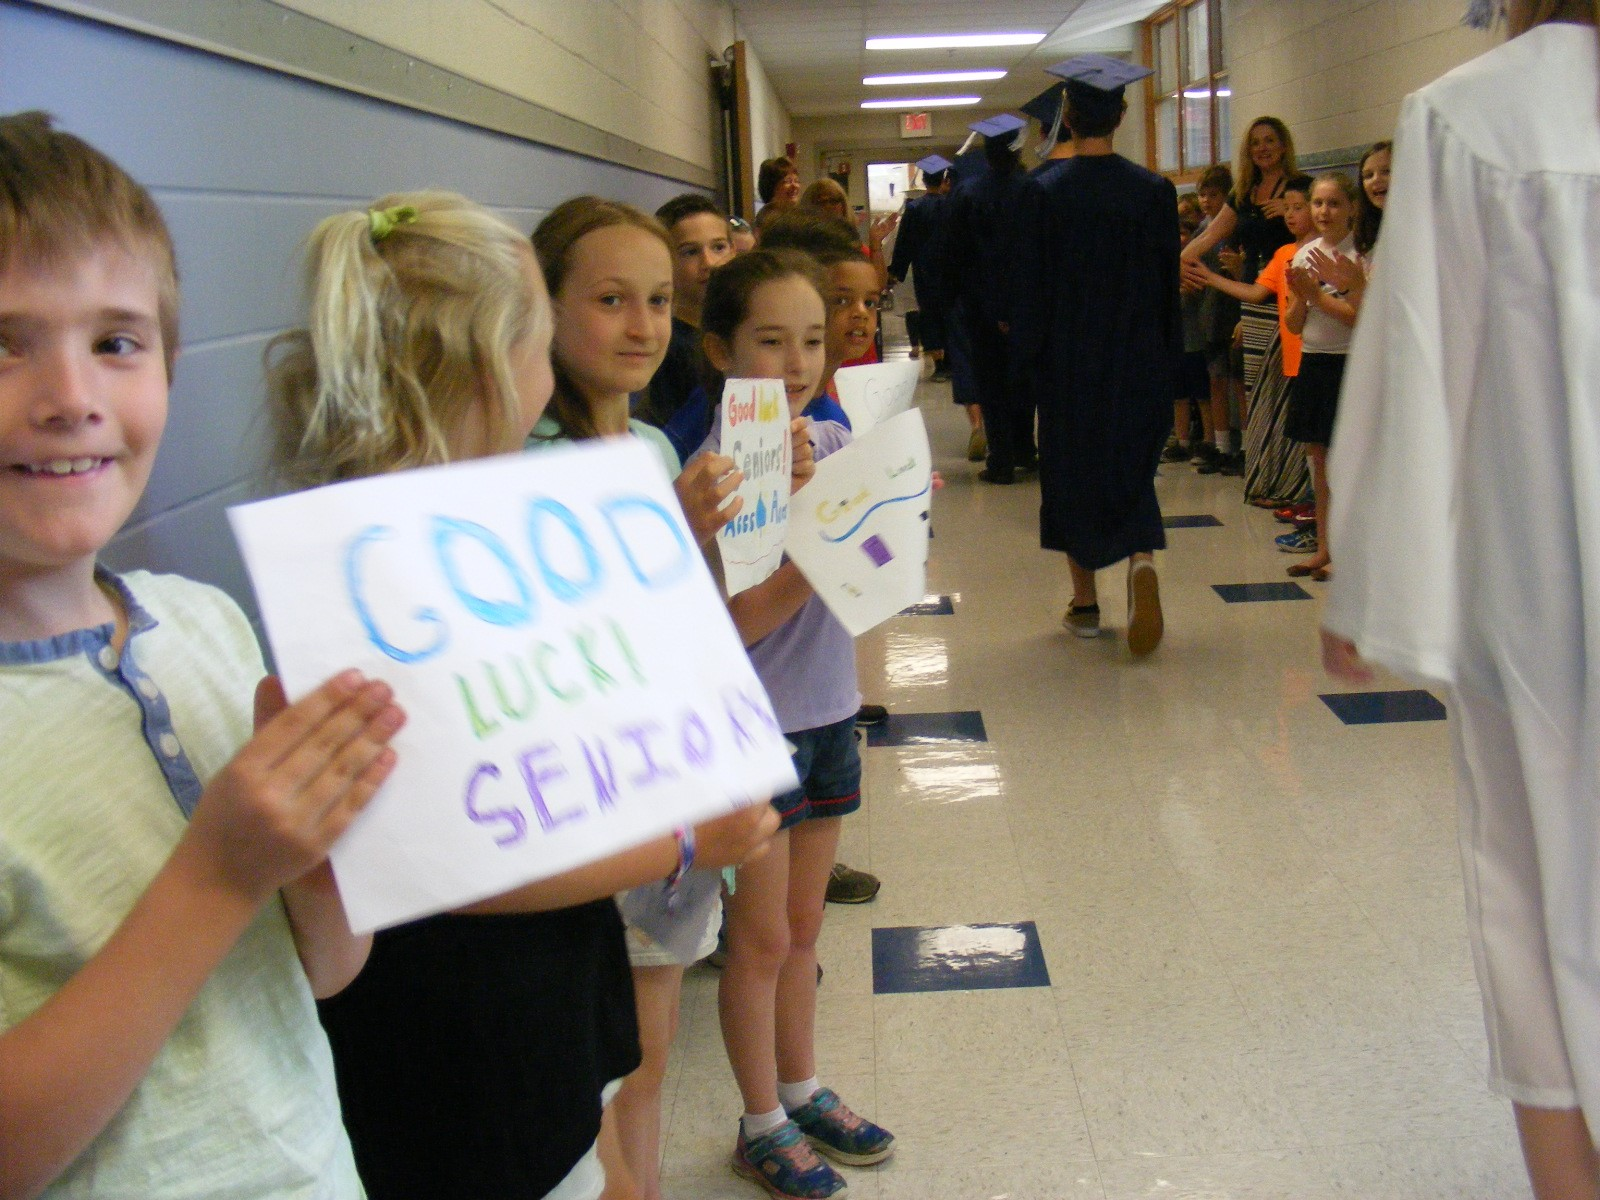 Graduate March at GES - Class of 2016